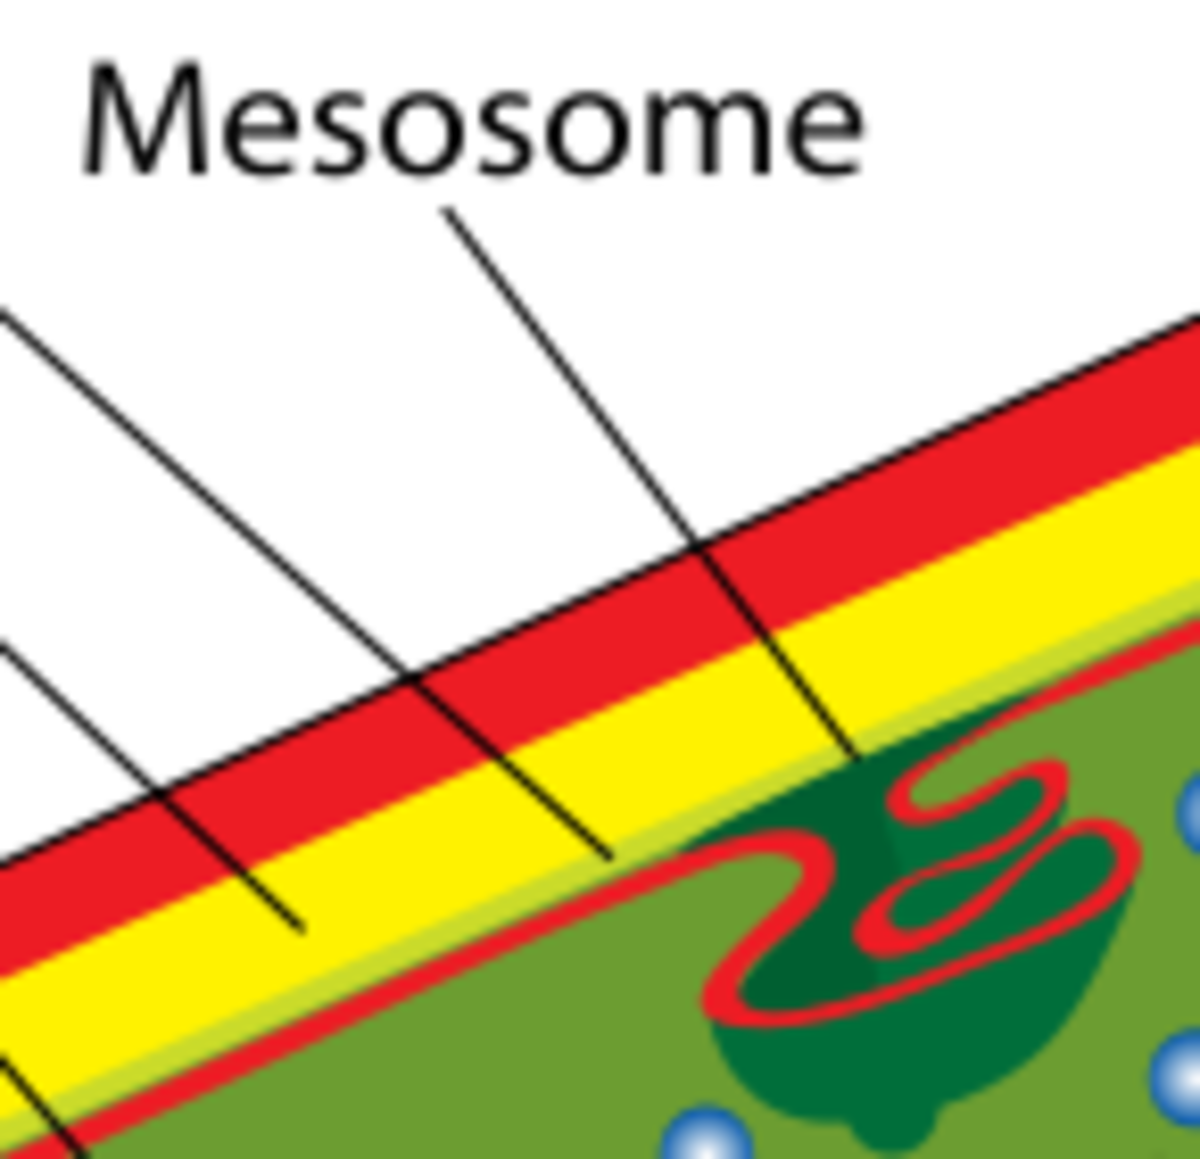 The structure of a Mesosome